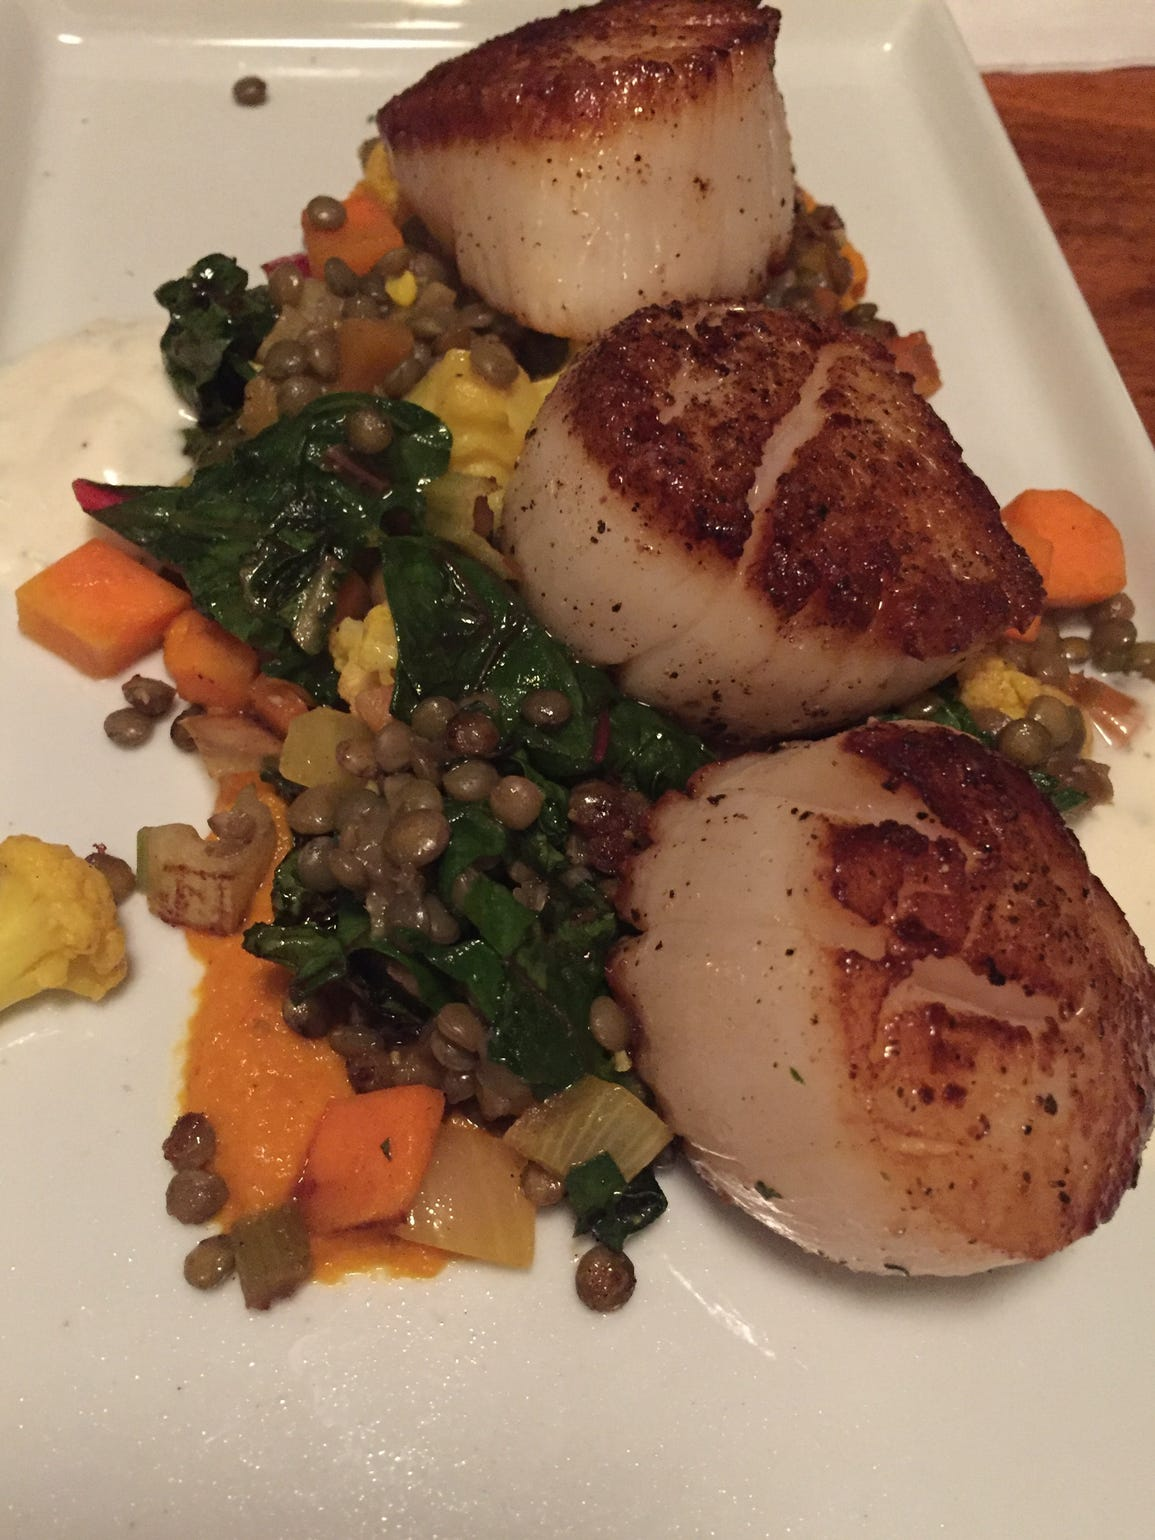 At Goodkind, 2457 S. Wentworth Ave., scallops were